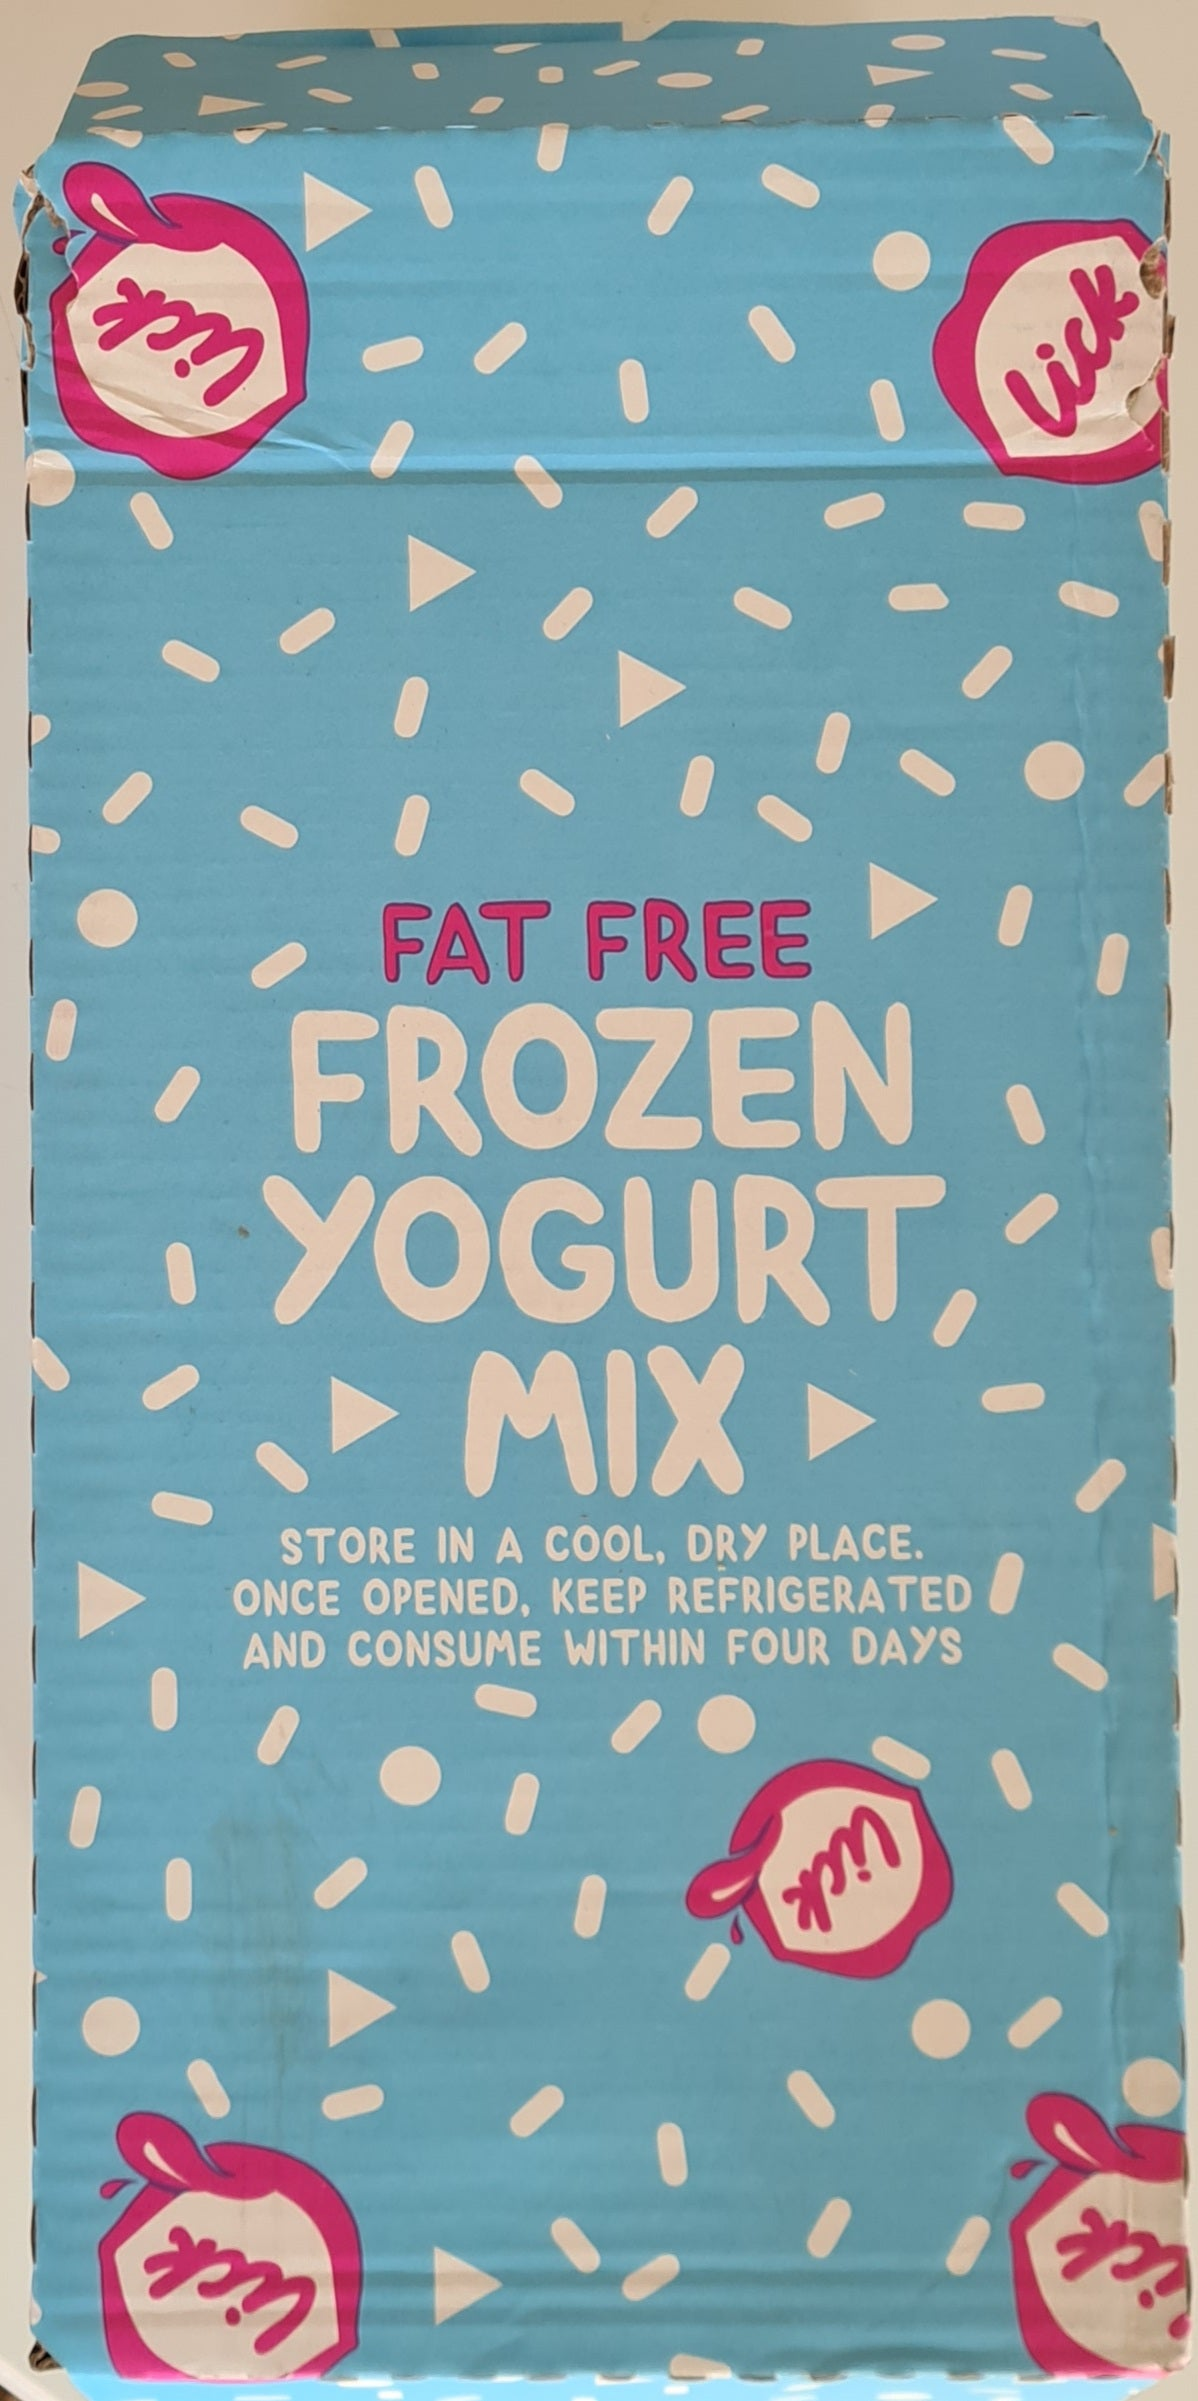 LFYM1.12 - Lick Frozen Yogurt Mix - Case of 12 x 1L